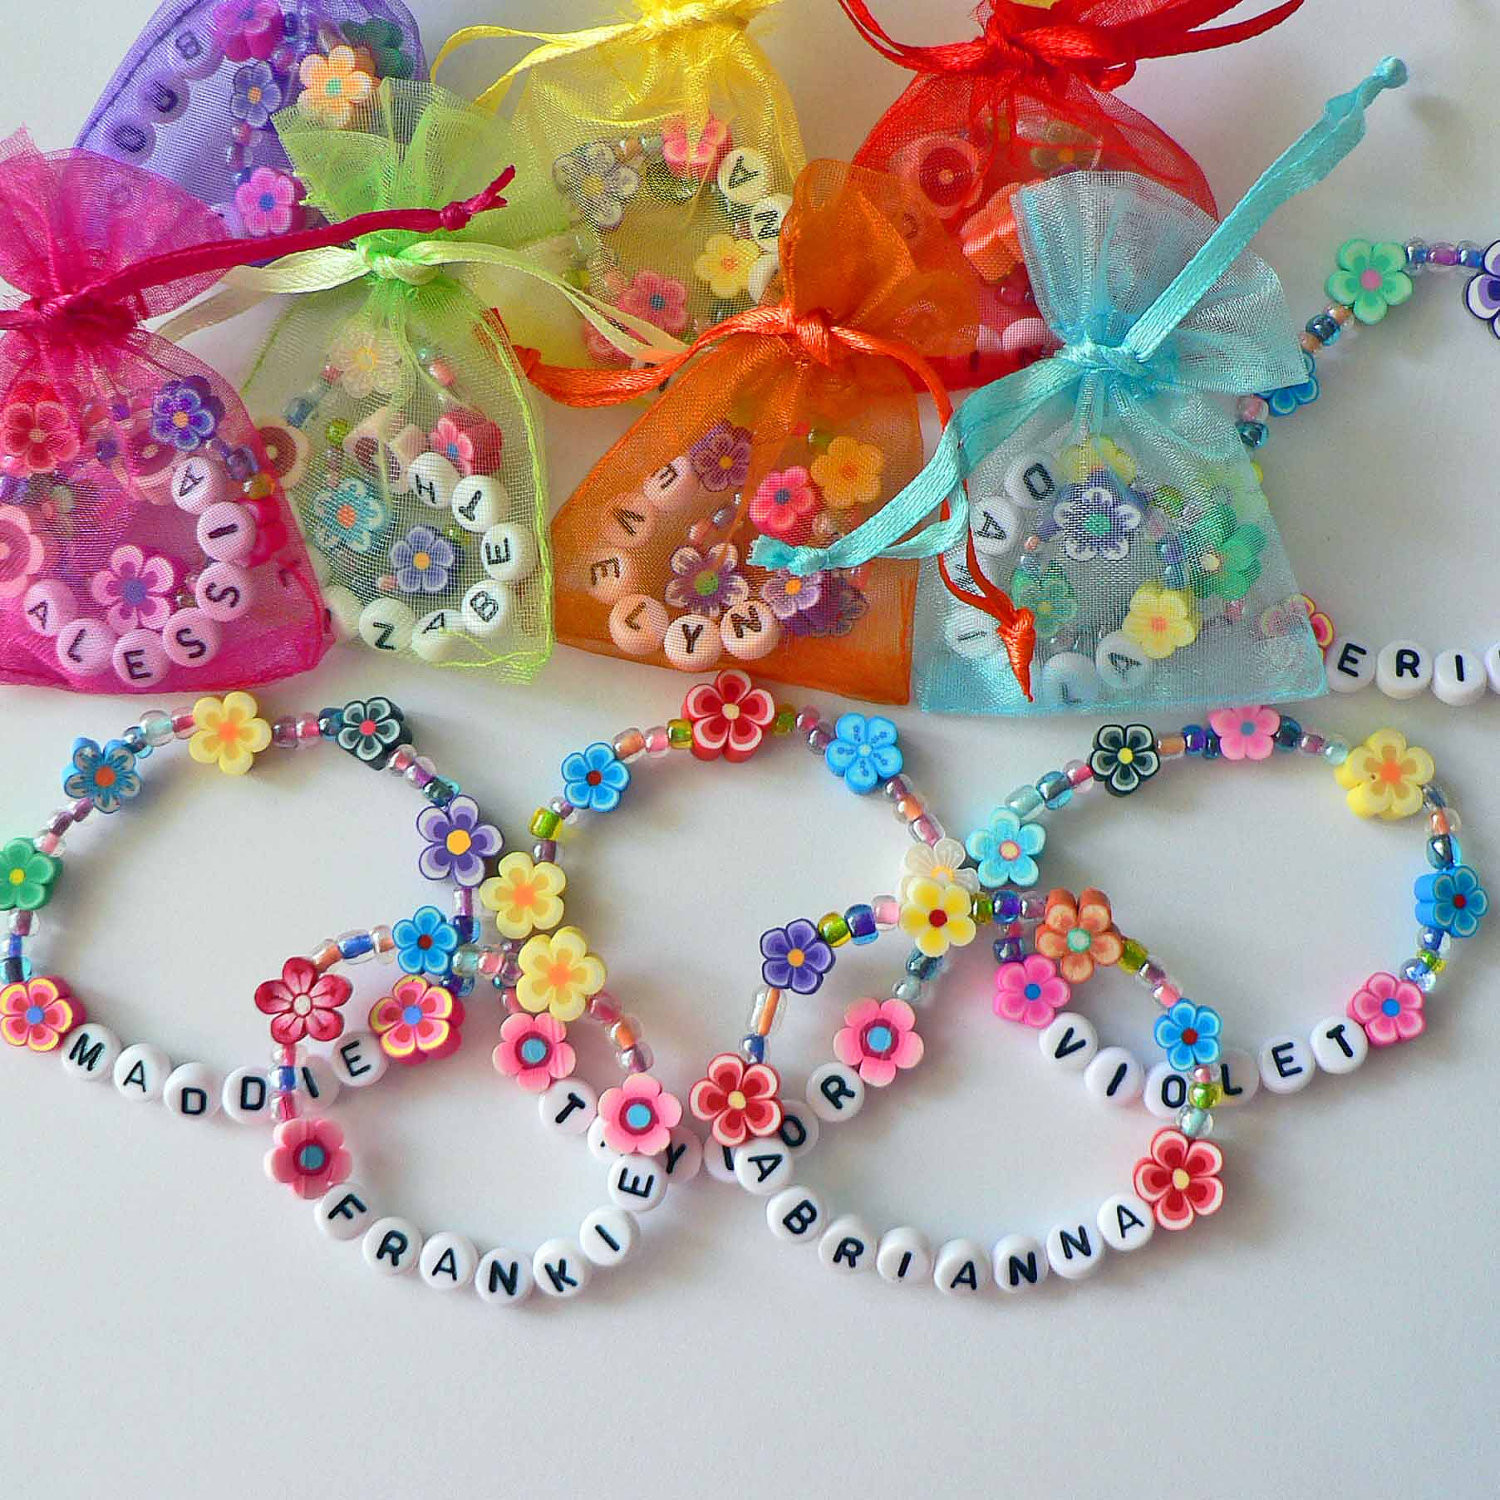 Personalized Birthday Decorations  Kids Personalized Luau Party Favors Flower Lei Bracelets